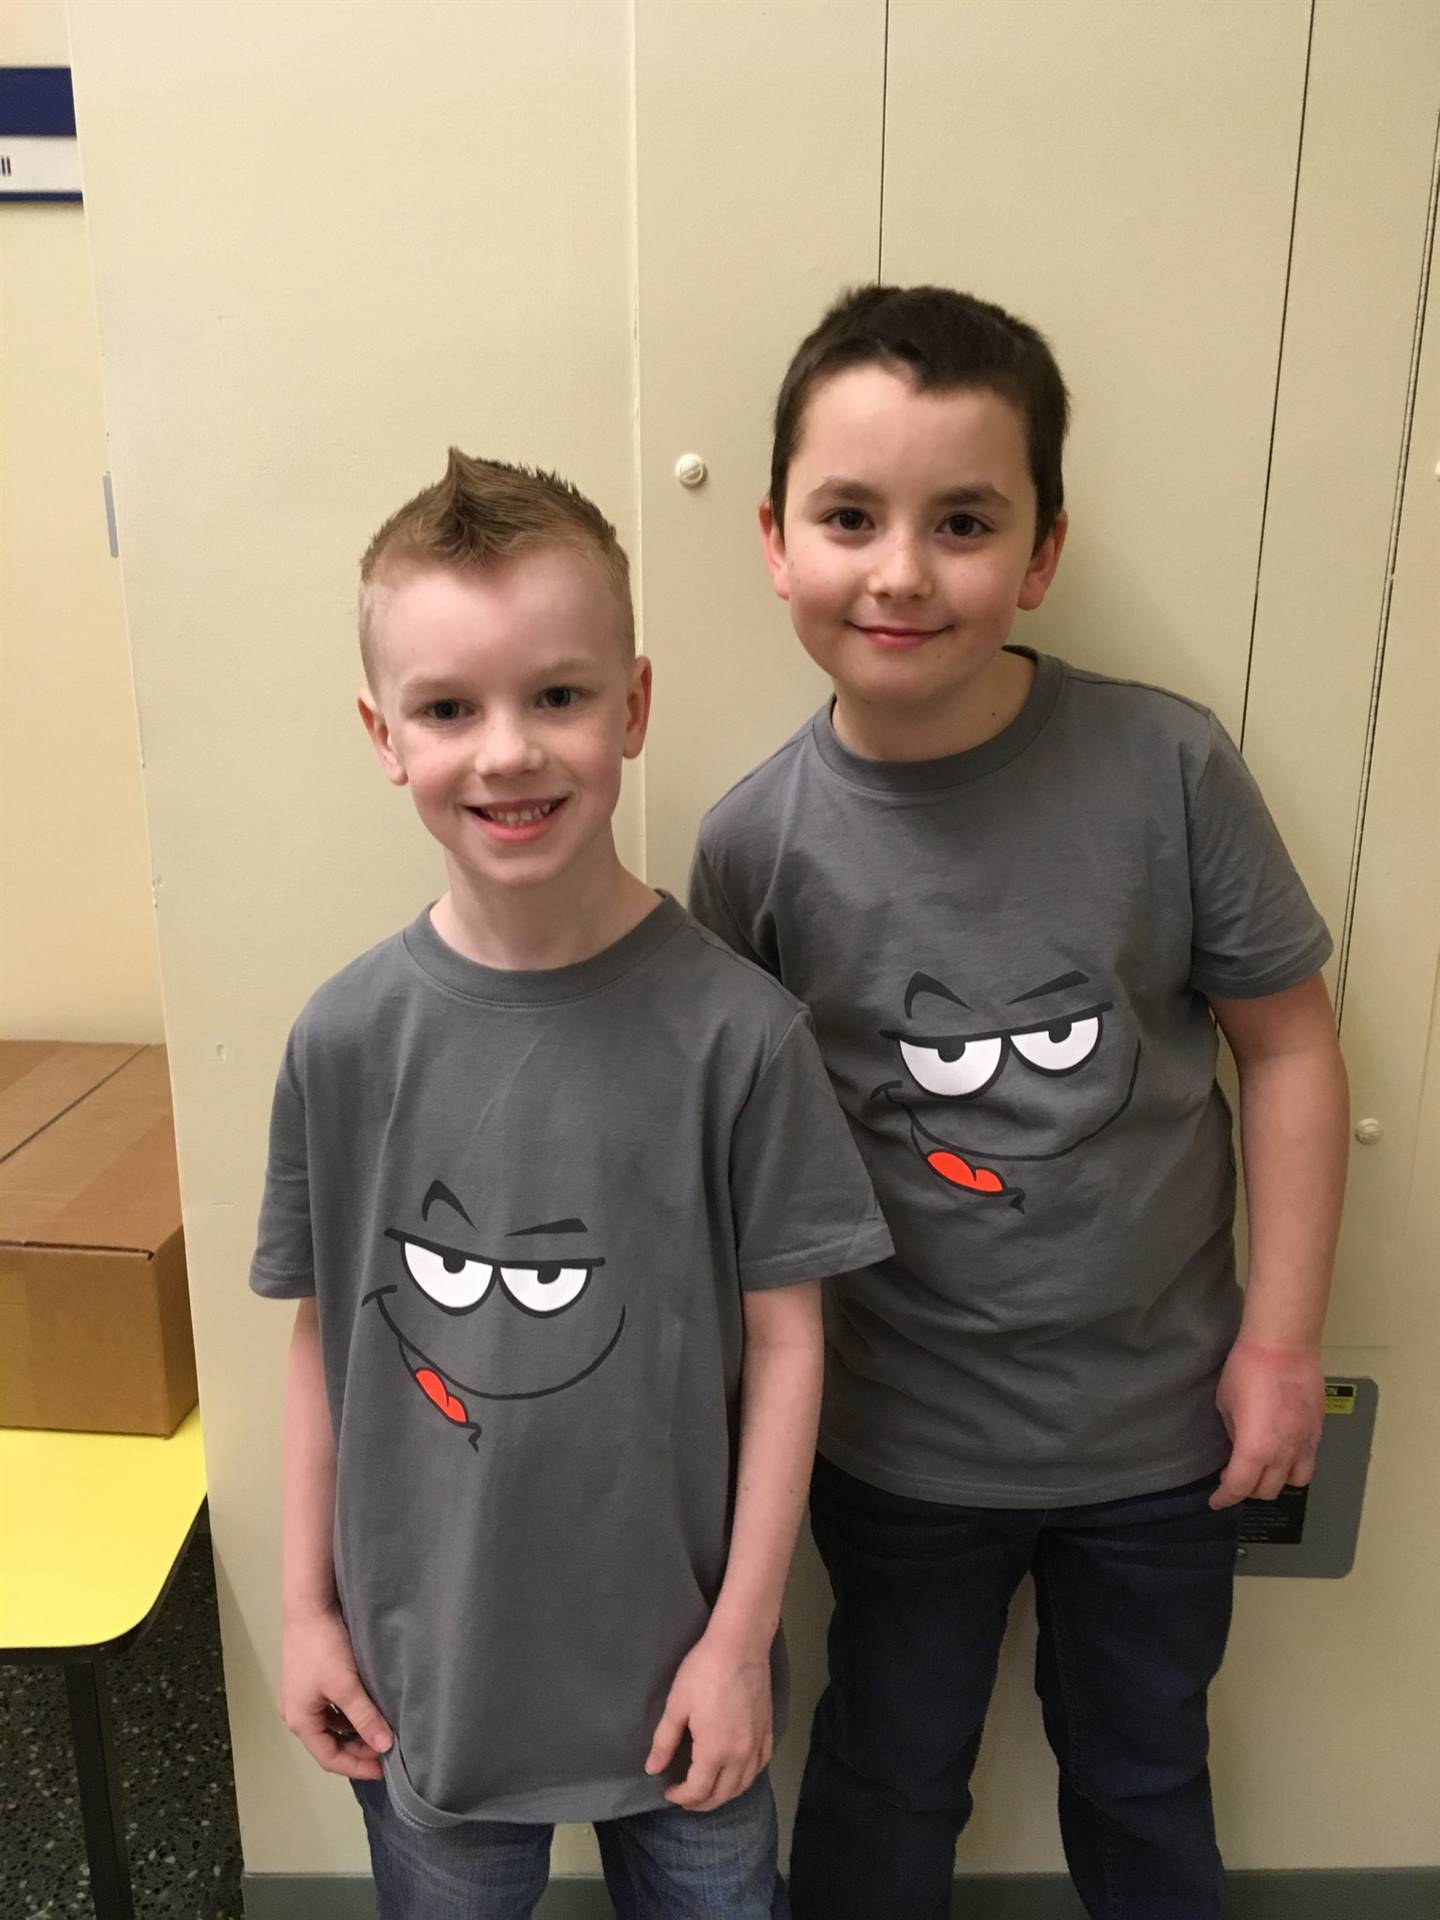 Students dressed as twins.